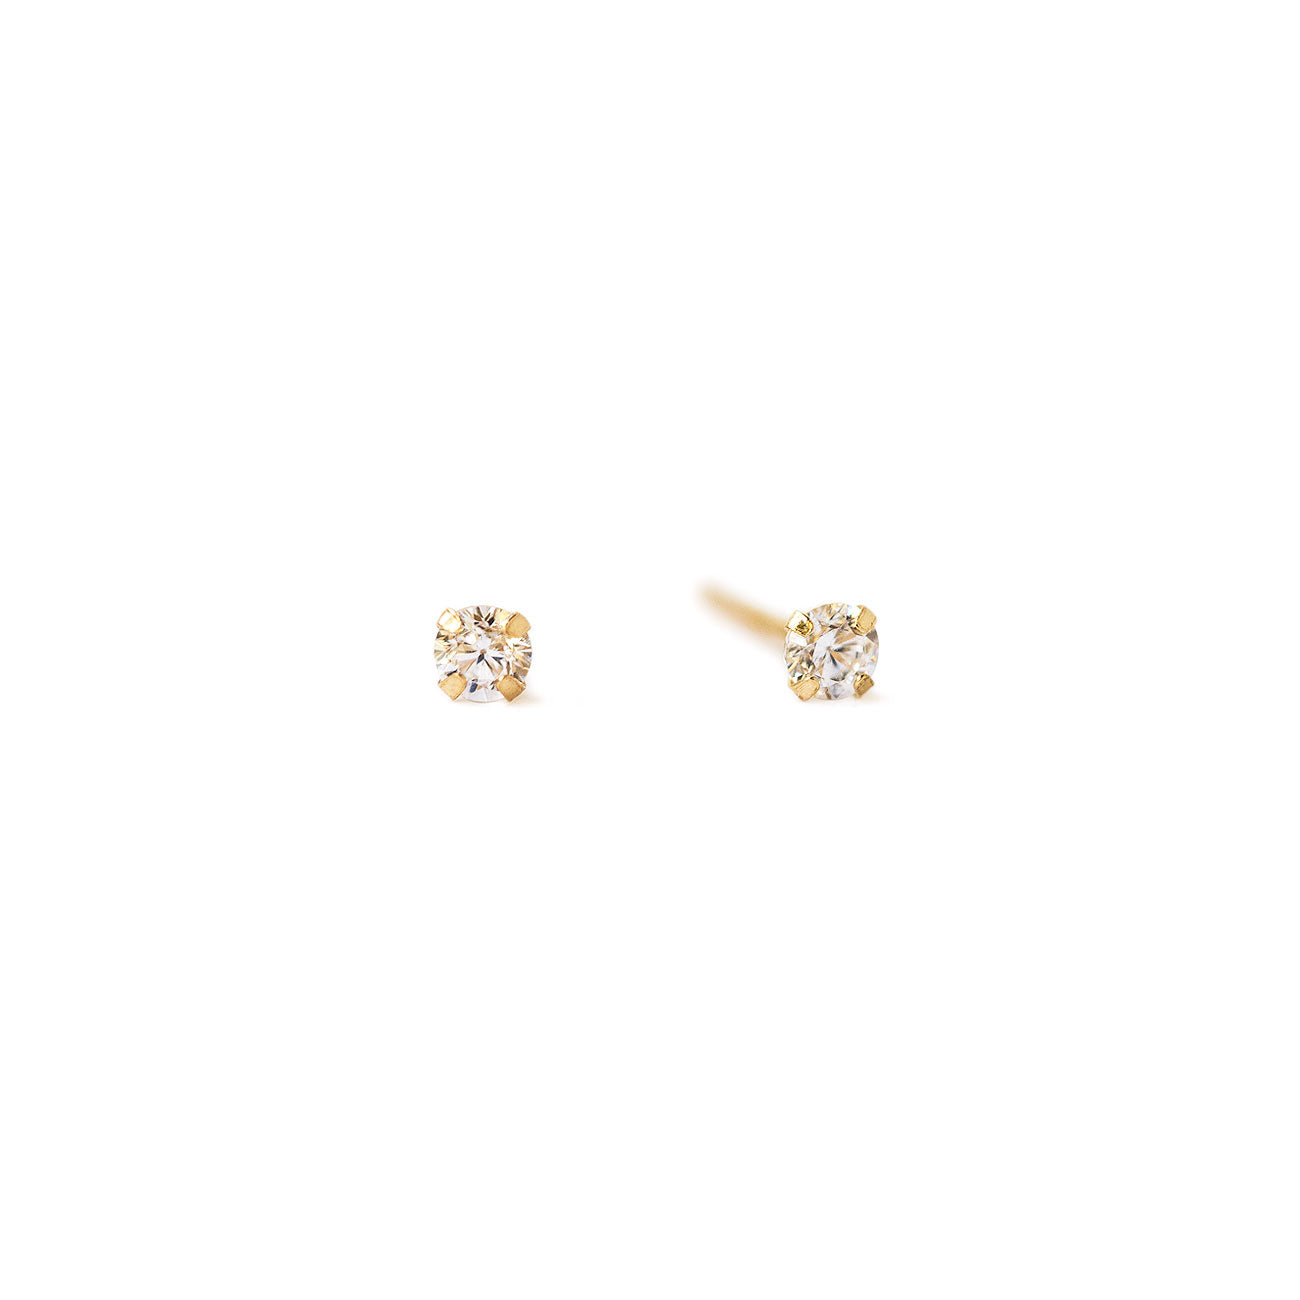 Tiny 14K Gold Crystal Stud Earrings